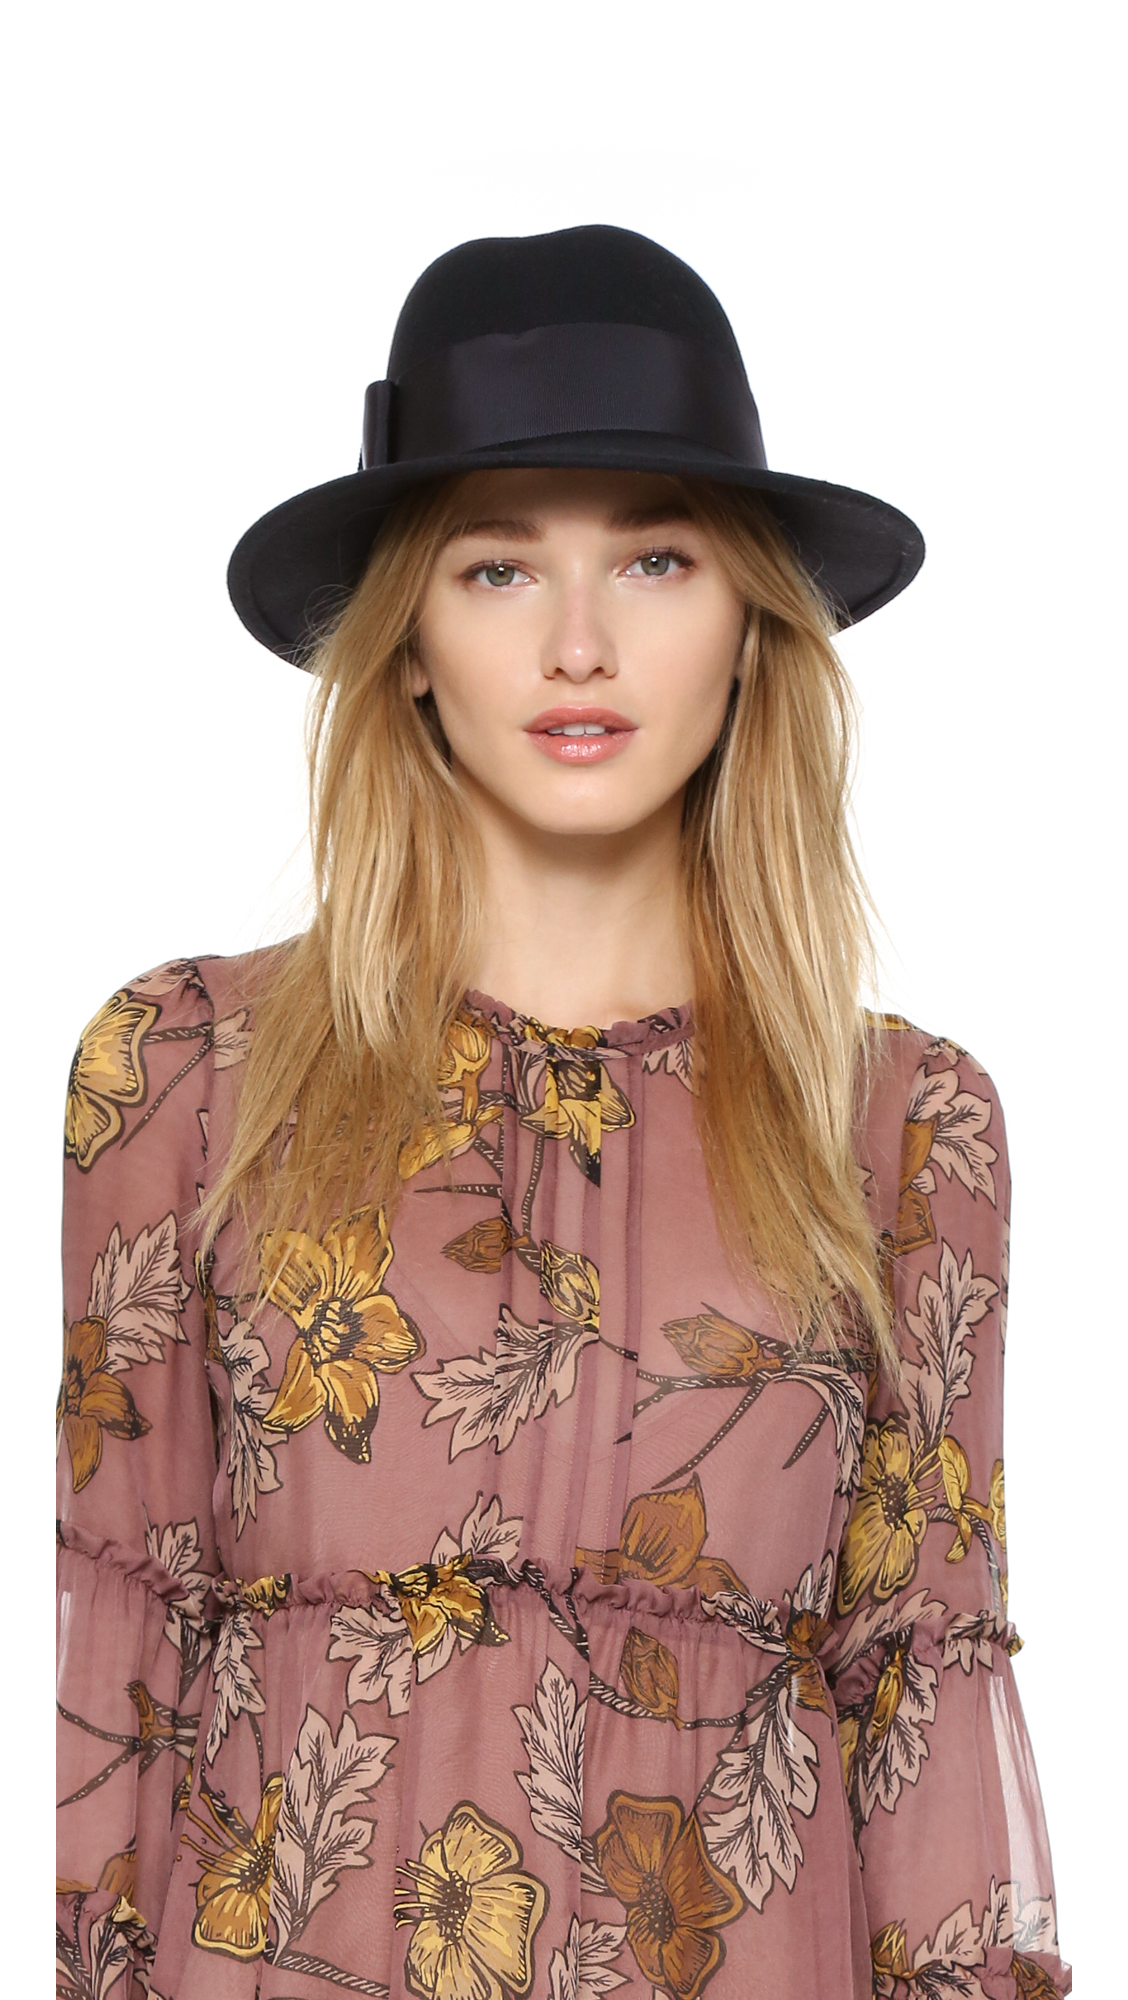 b5e323c97ad Lyst - Kate Spade Fedora Bow Hat - Sweetheart Pink in Black